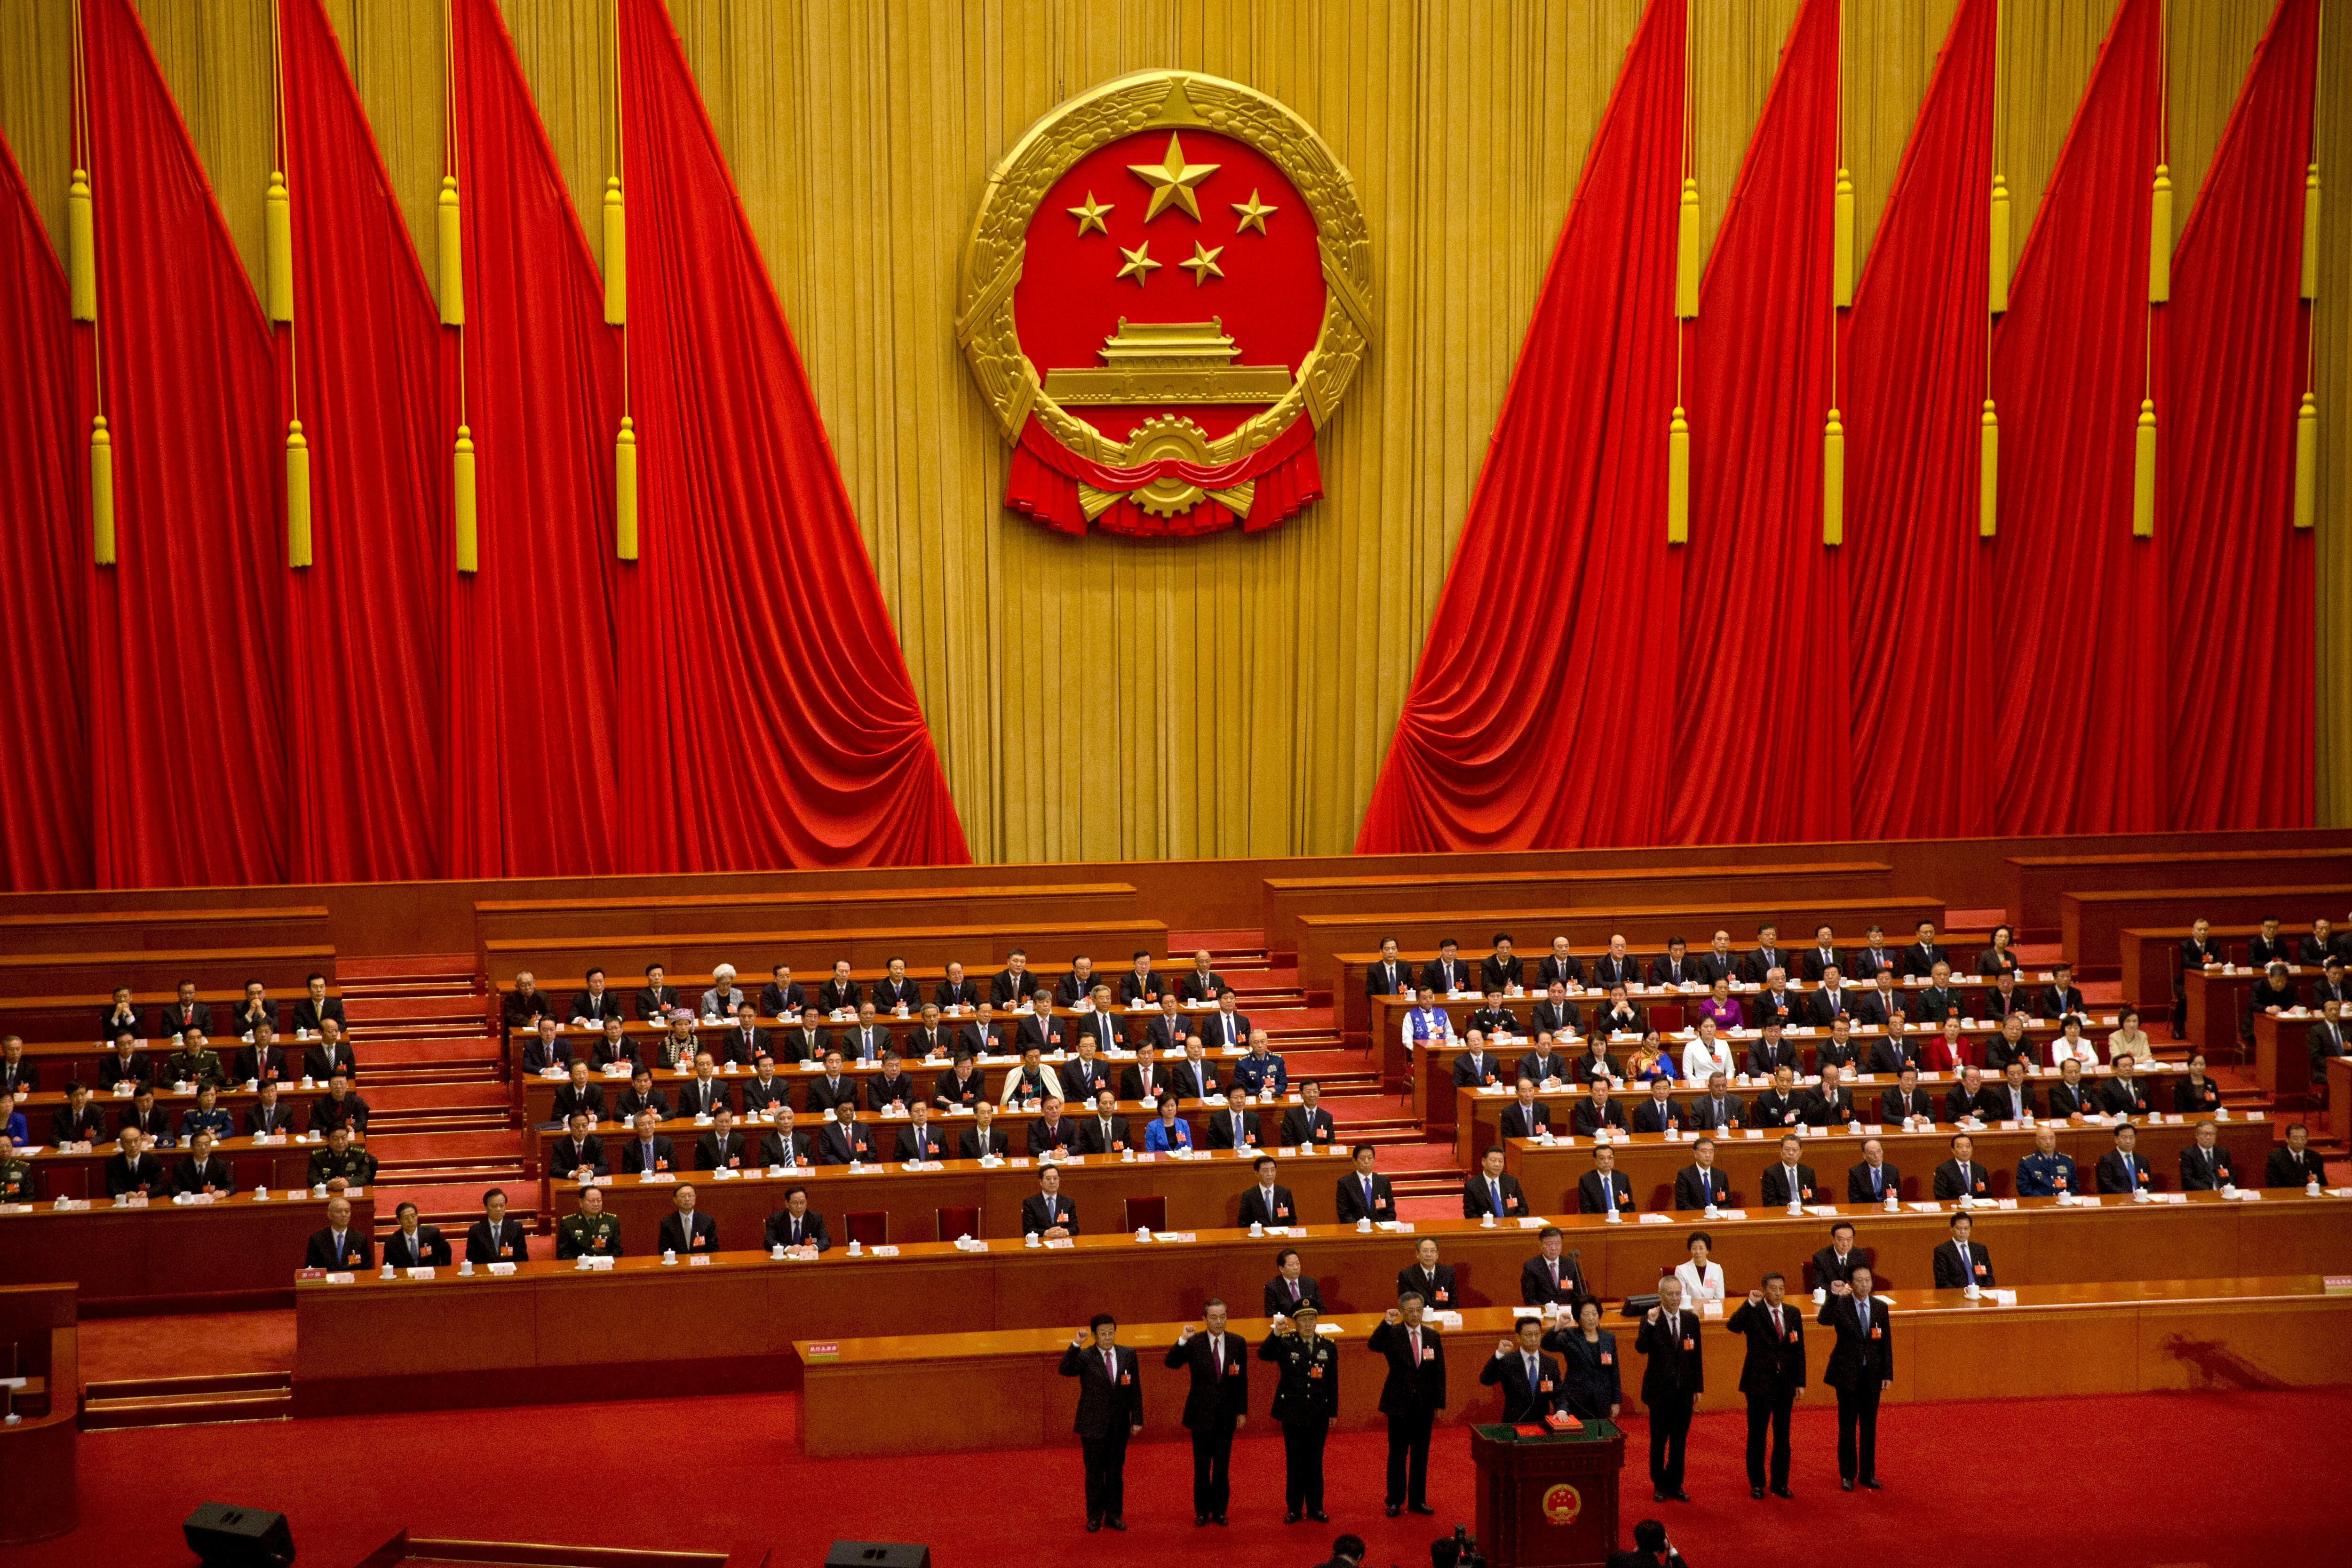 FILE - In this March 19, 2018, file photo, newly-appointed officials take the oath of office during a plenary session of China's National People's Congress (NPC) at the Great Hall of the People in Beijing. (AP Photo/Mark Schiefelbein, File)